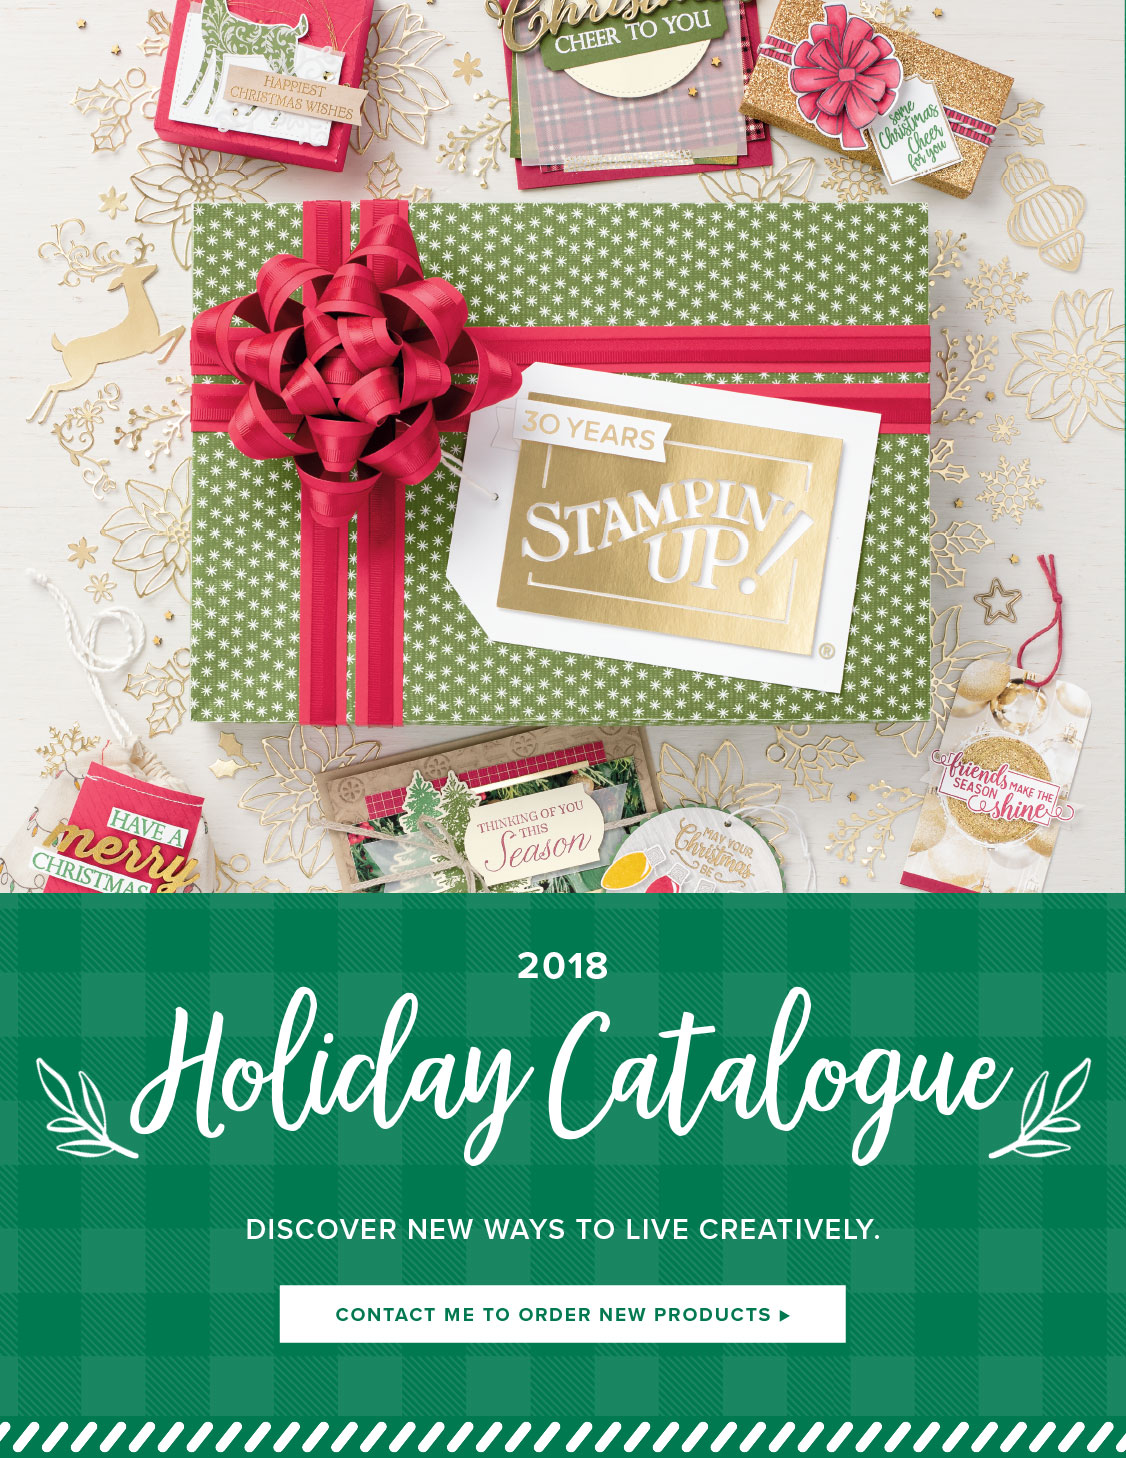 2018 HOLIDAY CATALOGUE!